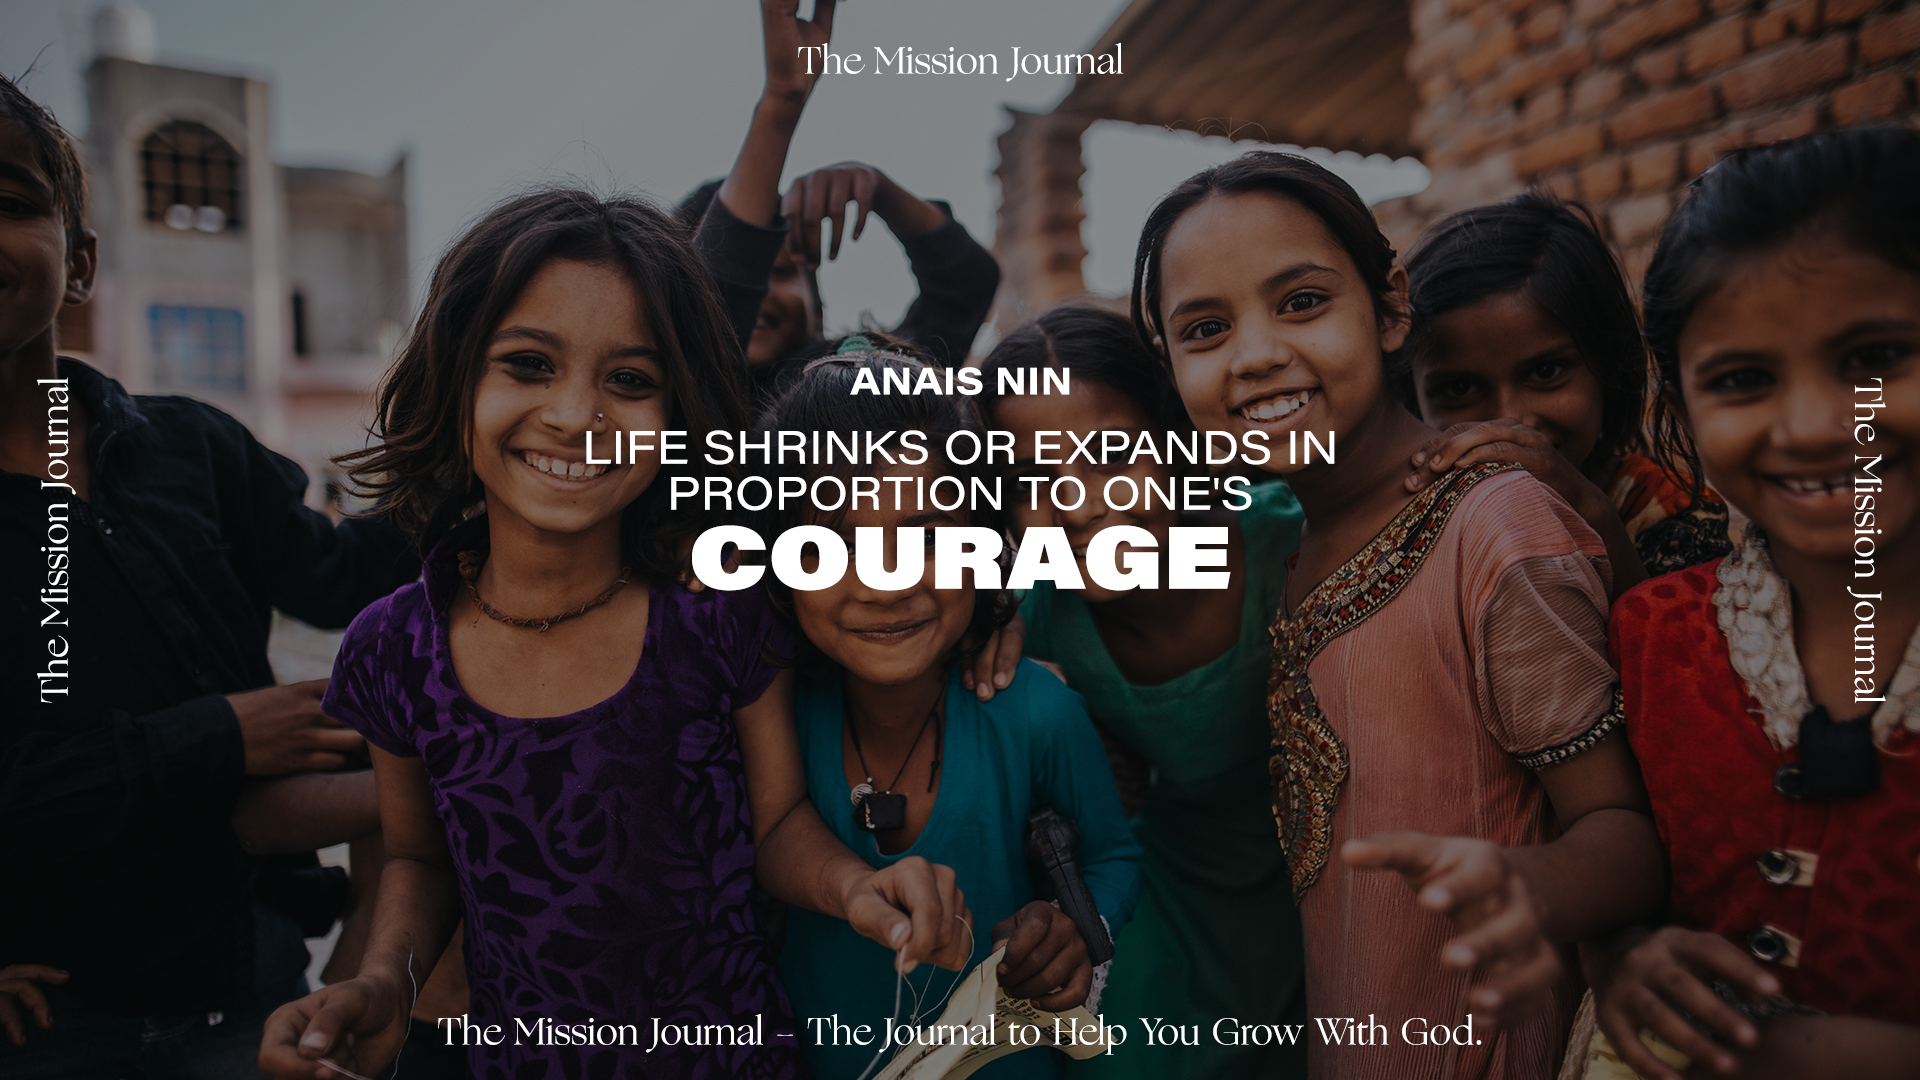 Mission Trip JournalHave Courage On Your Mission Trip.jpg